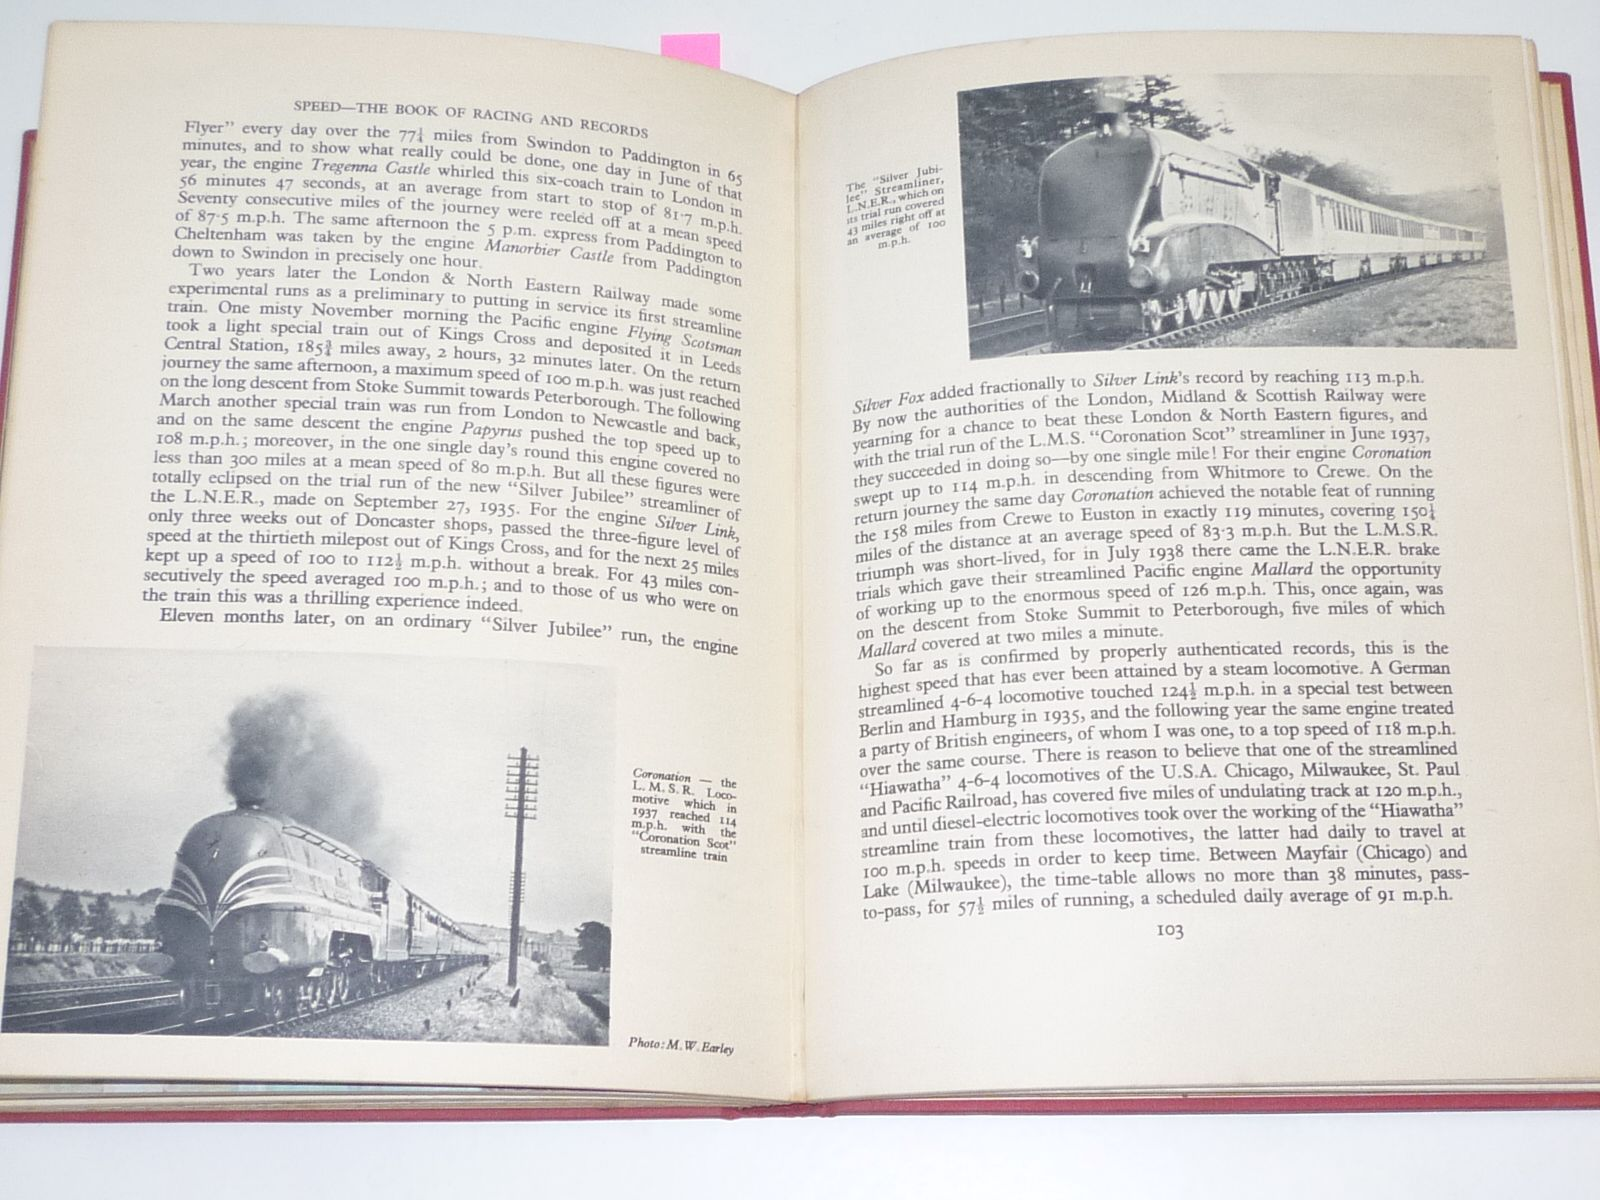 Speed The Book of Racing & Records (Reynolds 1950)